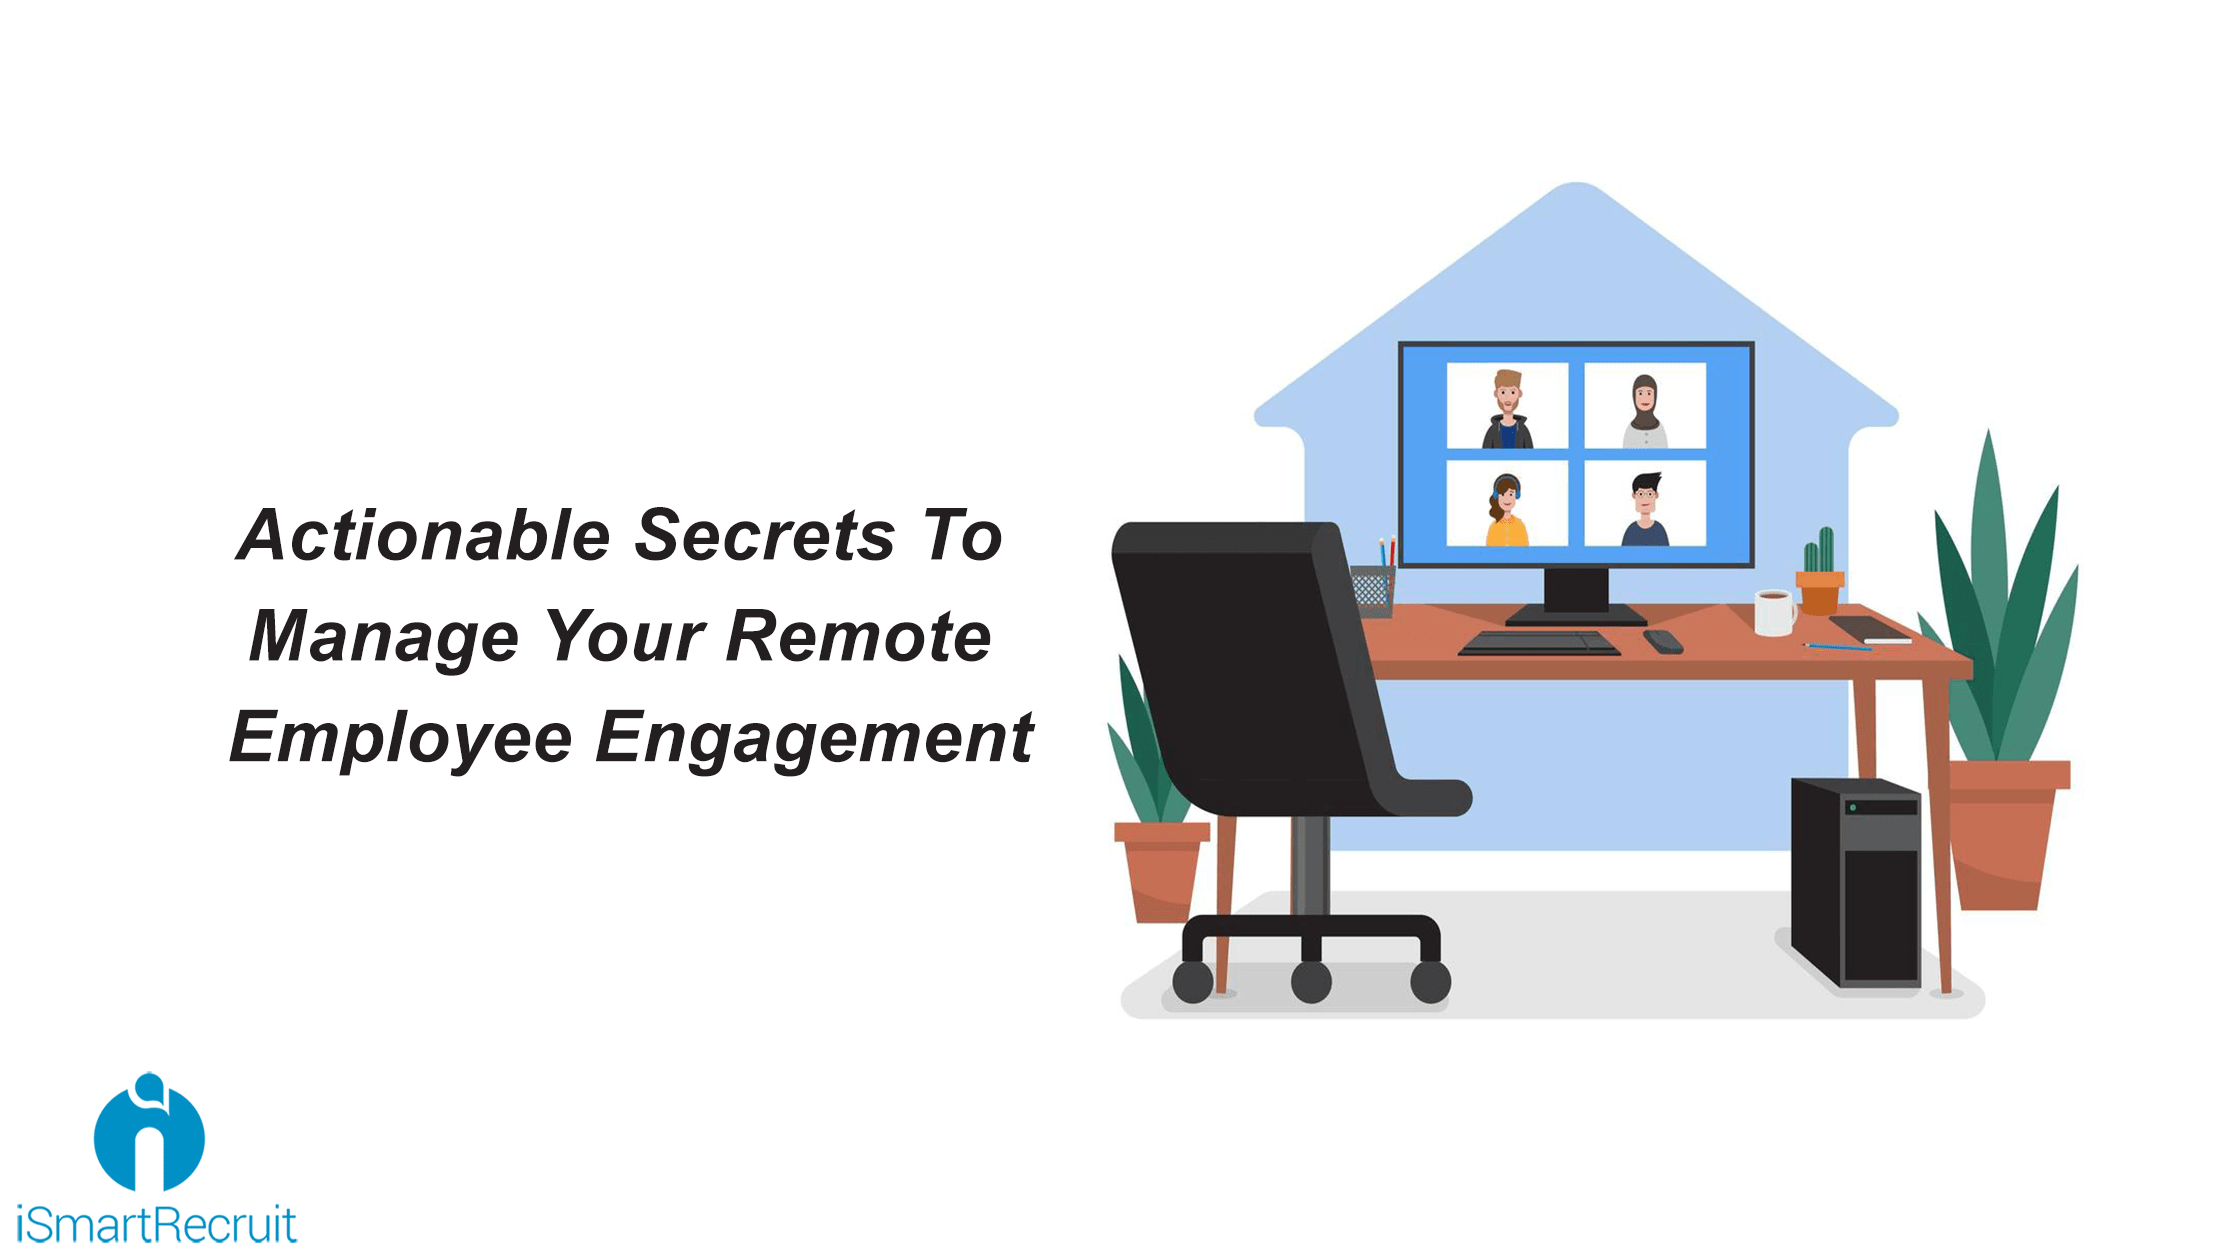 Actionable Secrets To Manage Your Remote Employee Engagement